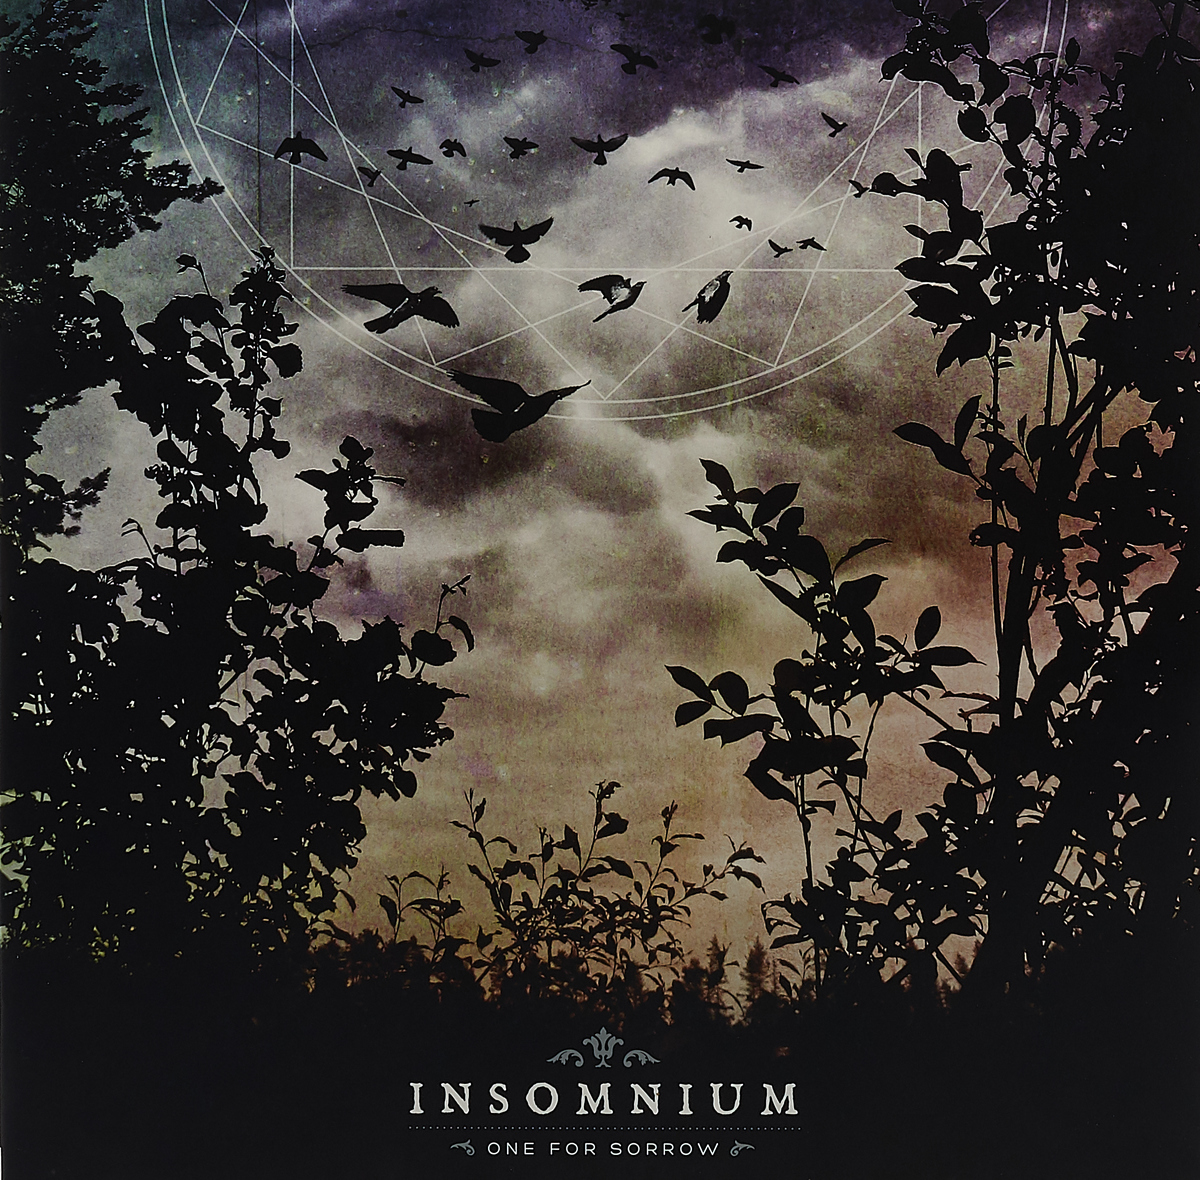 Insomnium Insomnium. One for Sorrow (Re-issue 2018) (LP + CD) lcl 87a cf287a 1 pack black toner cartridge compatible for hp laserjet enterprise m506dn m506x m506n m506dn mfp m527z m527dn